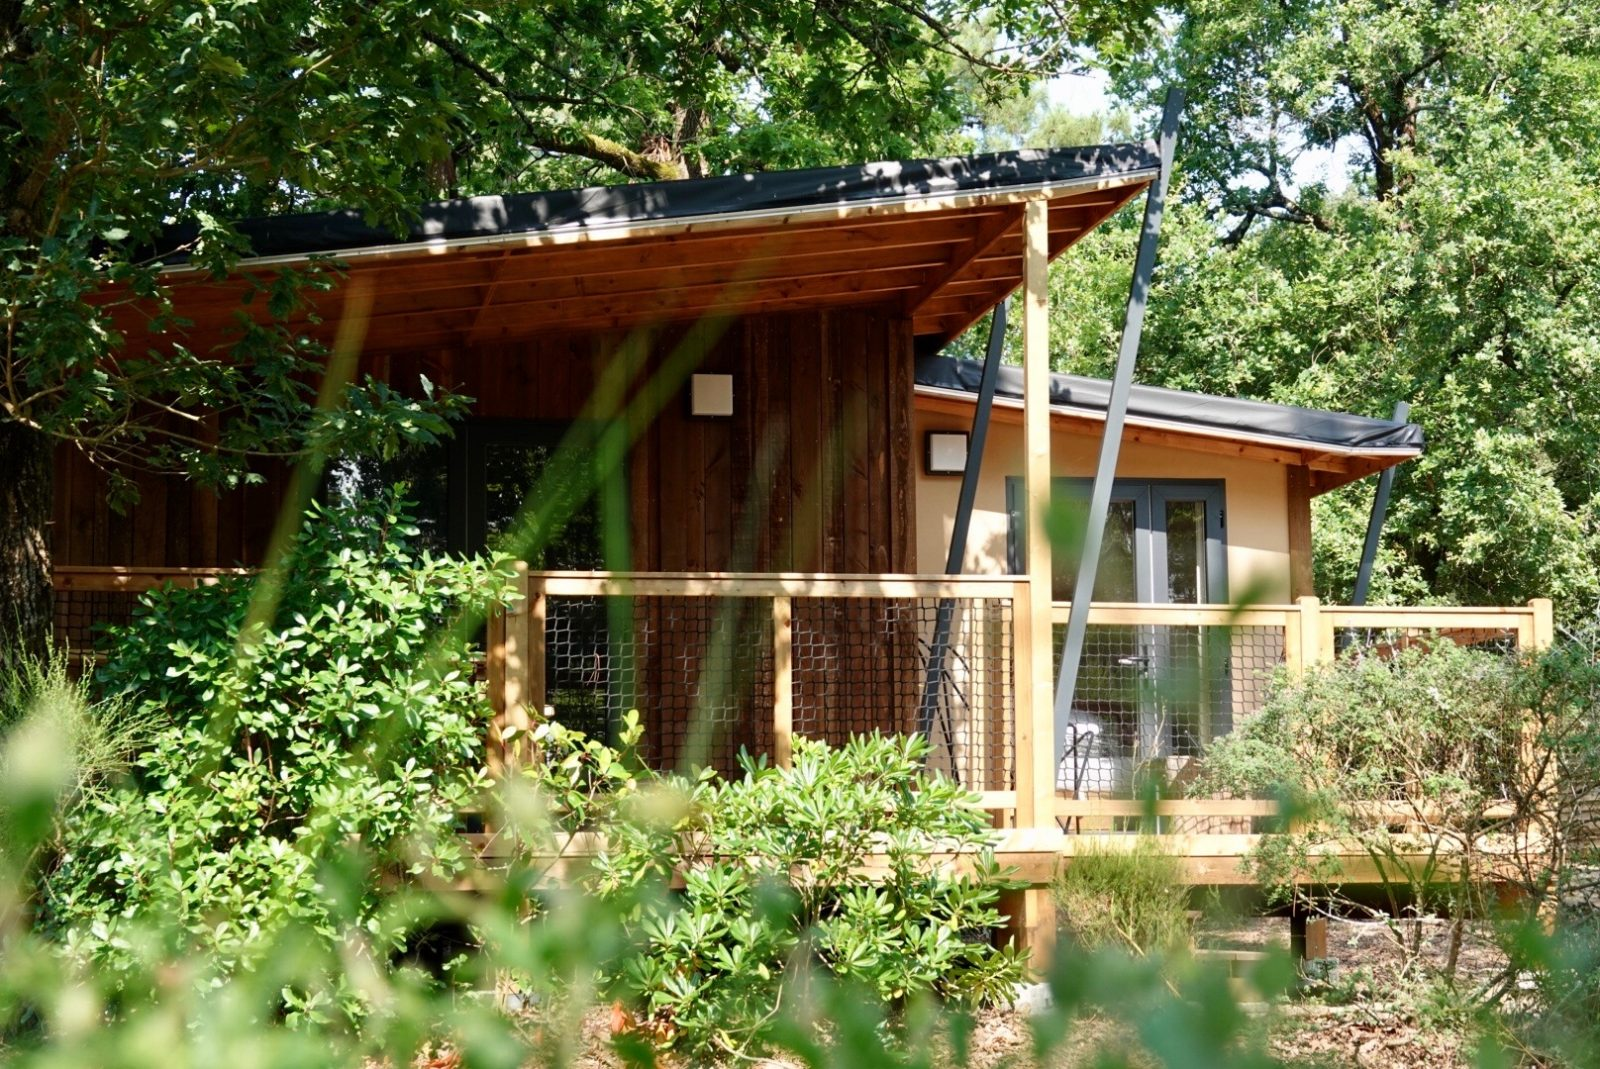 9- Camping des Pins Soulac